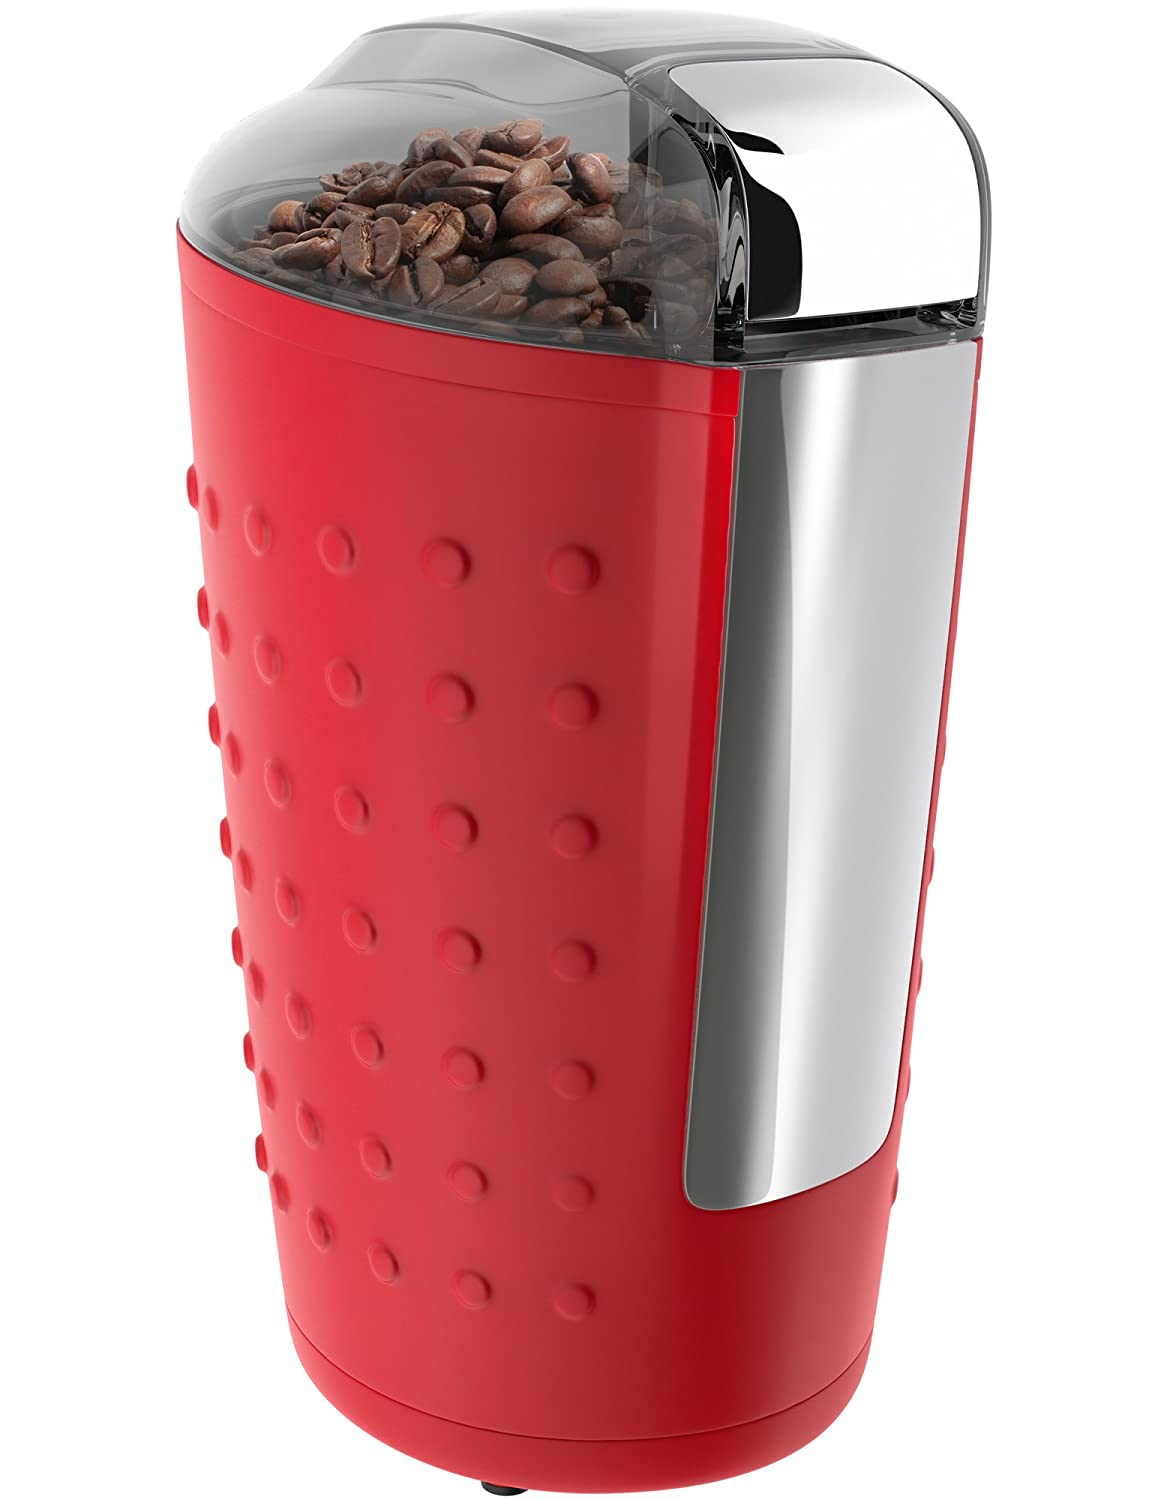 Vremi Blade Coffee Grinder Electric- For Coffee Bean or Spices with Stainless Steel Blade - Makes 12 to 14 Cups of Pour Over Espresso or Drip Coffee - Instant Travel Grinder with Brush Cleaner - Black VRM010081N